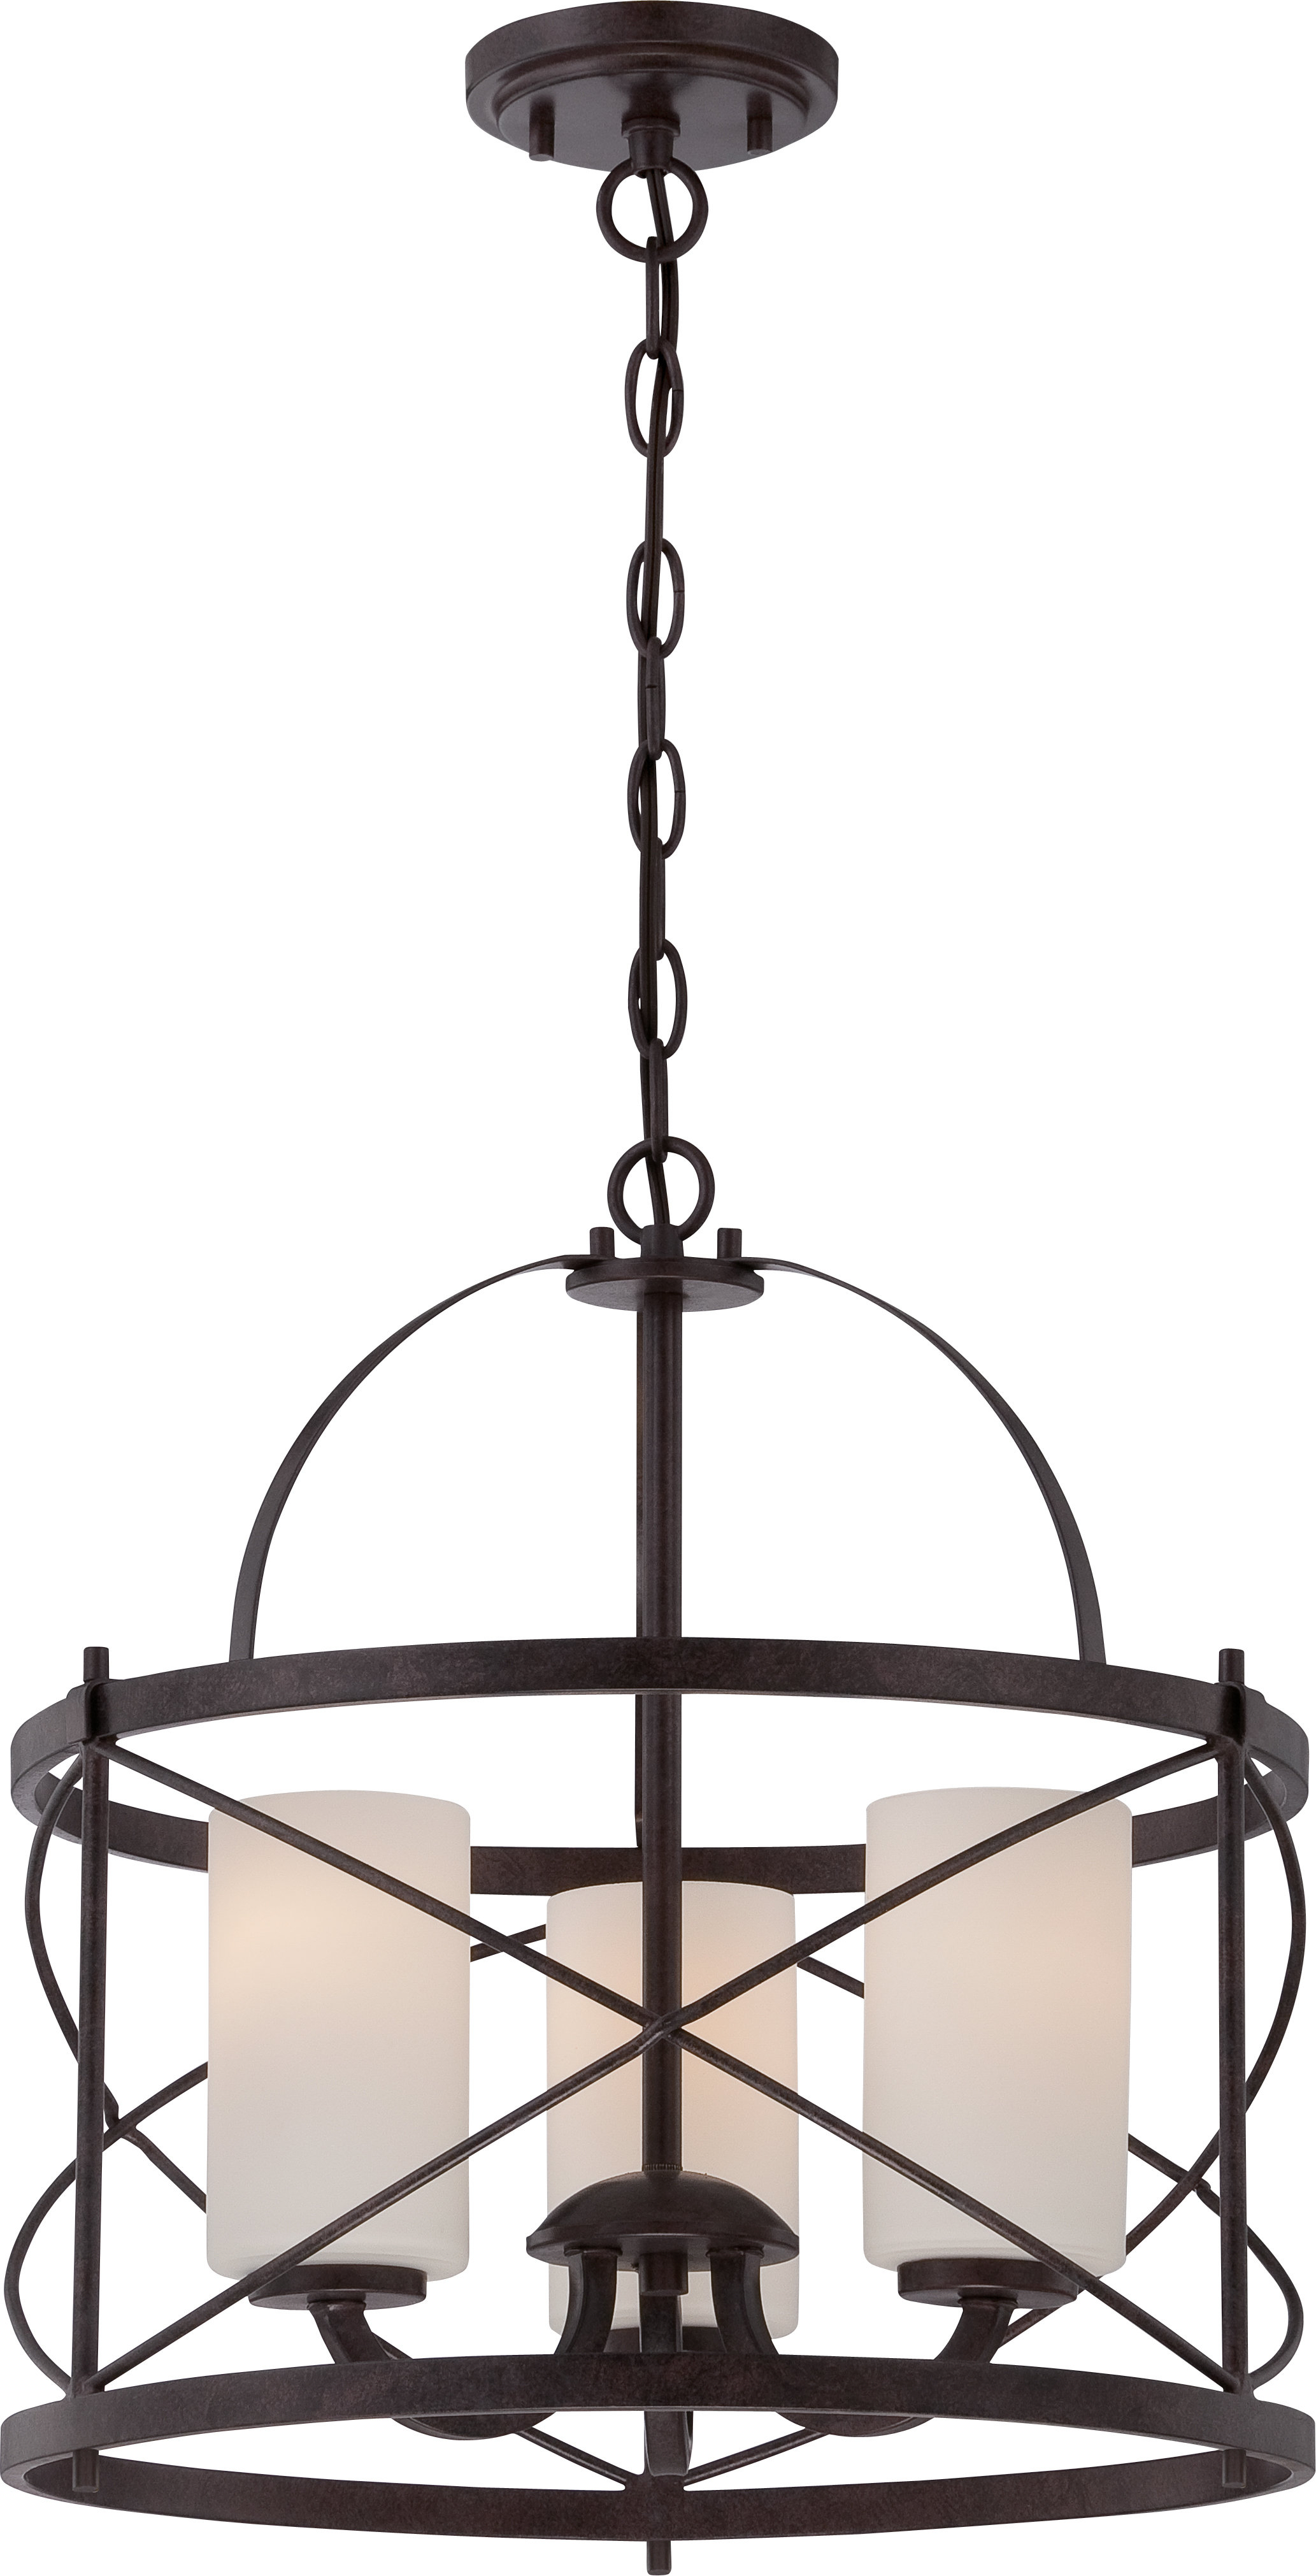 Farrier 3 Light Lantern Drum Pendant With Armande 4 Light Lantern Drum Pendants (View 20 of 30)